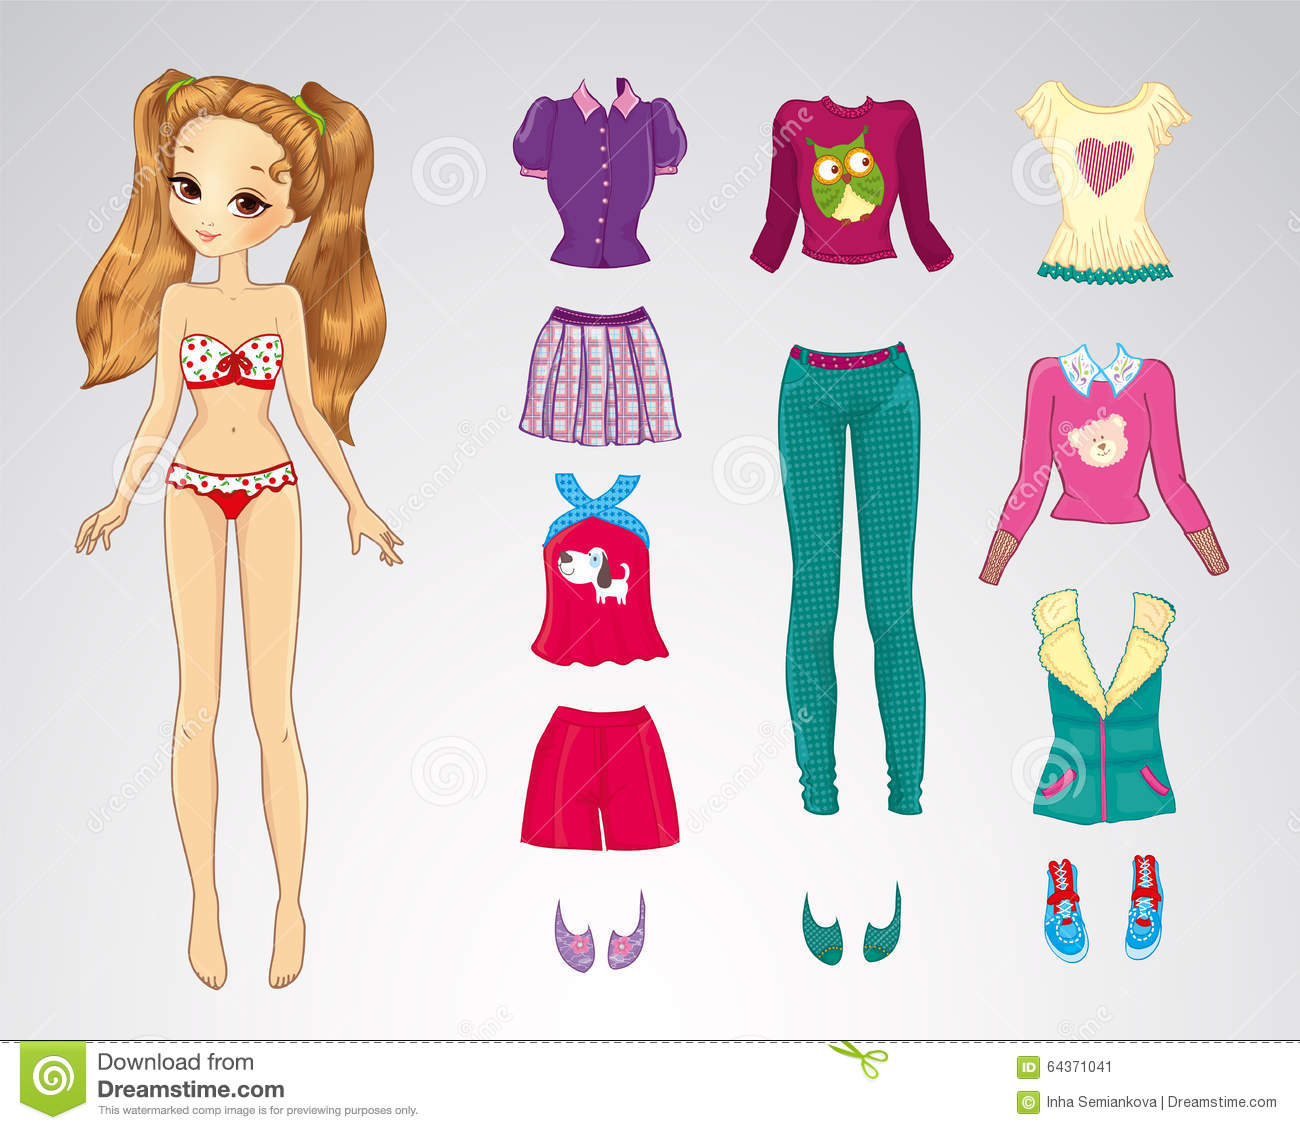 Writing a page 98 paper dolls